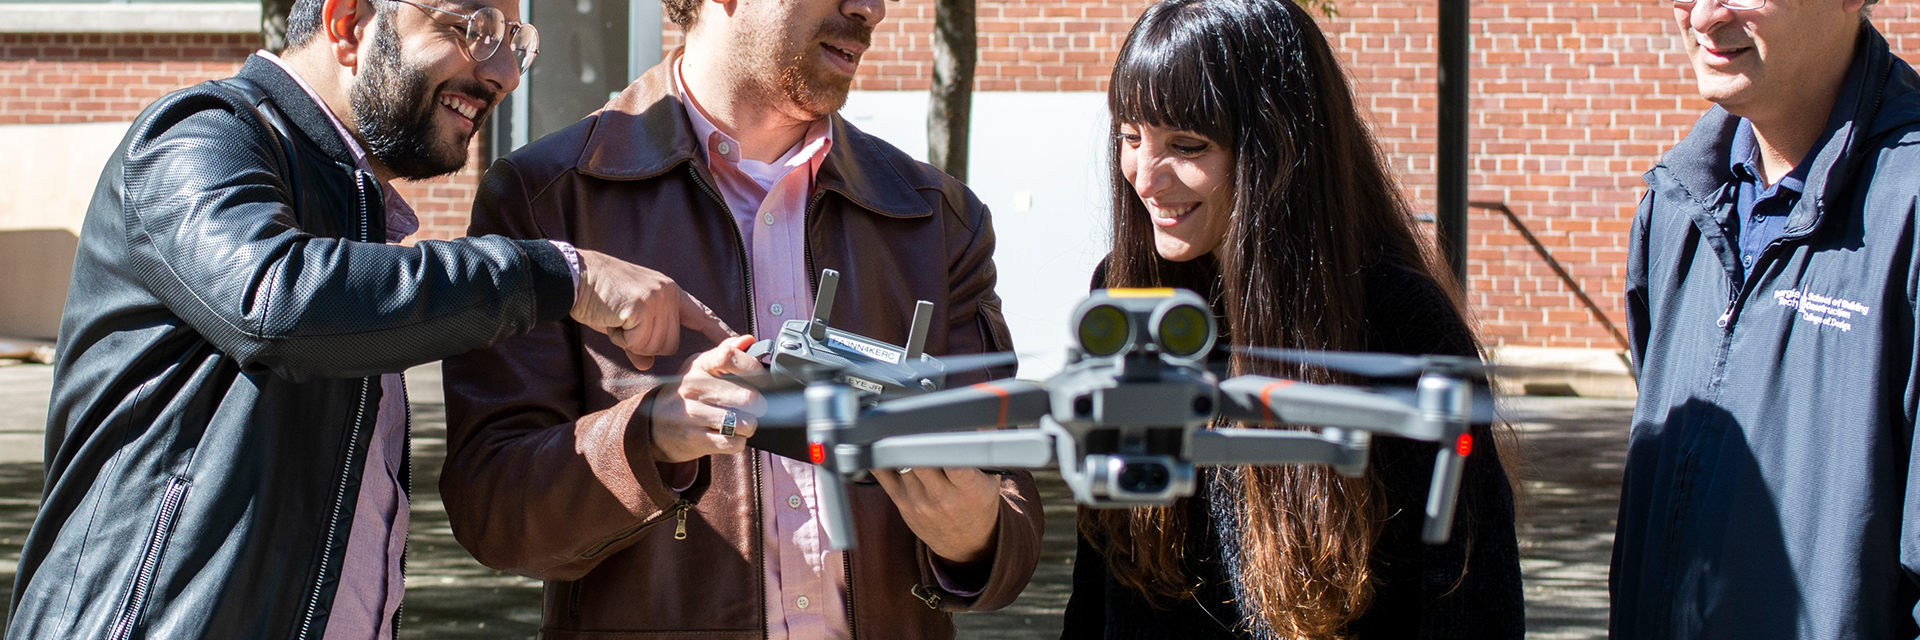 Ph.D. researchers and assistant professor, Tarek Rakha, flying a drone in the Hinman Courtyard.